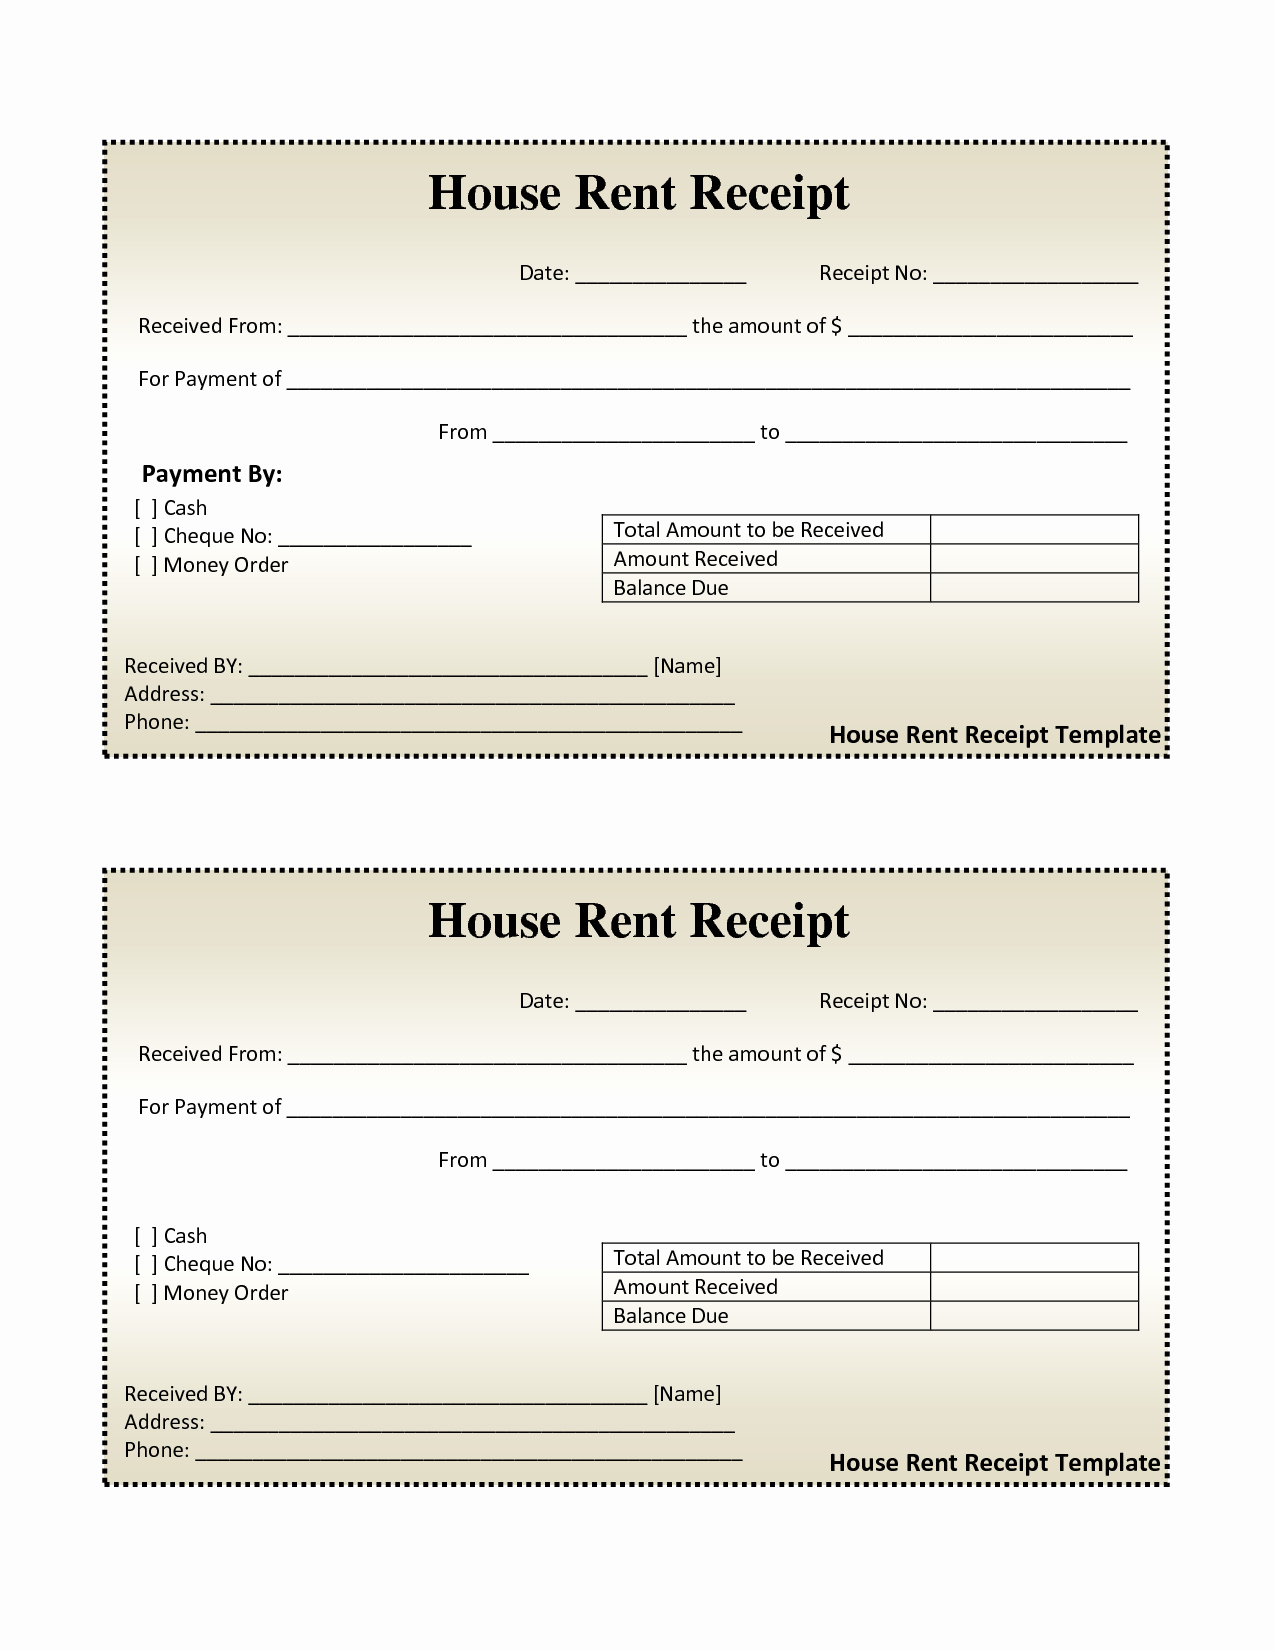 Rent Invoice Template Word Awesome Free House Rental Invoice